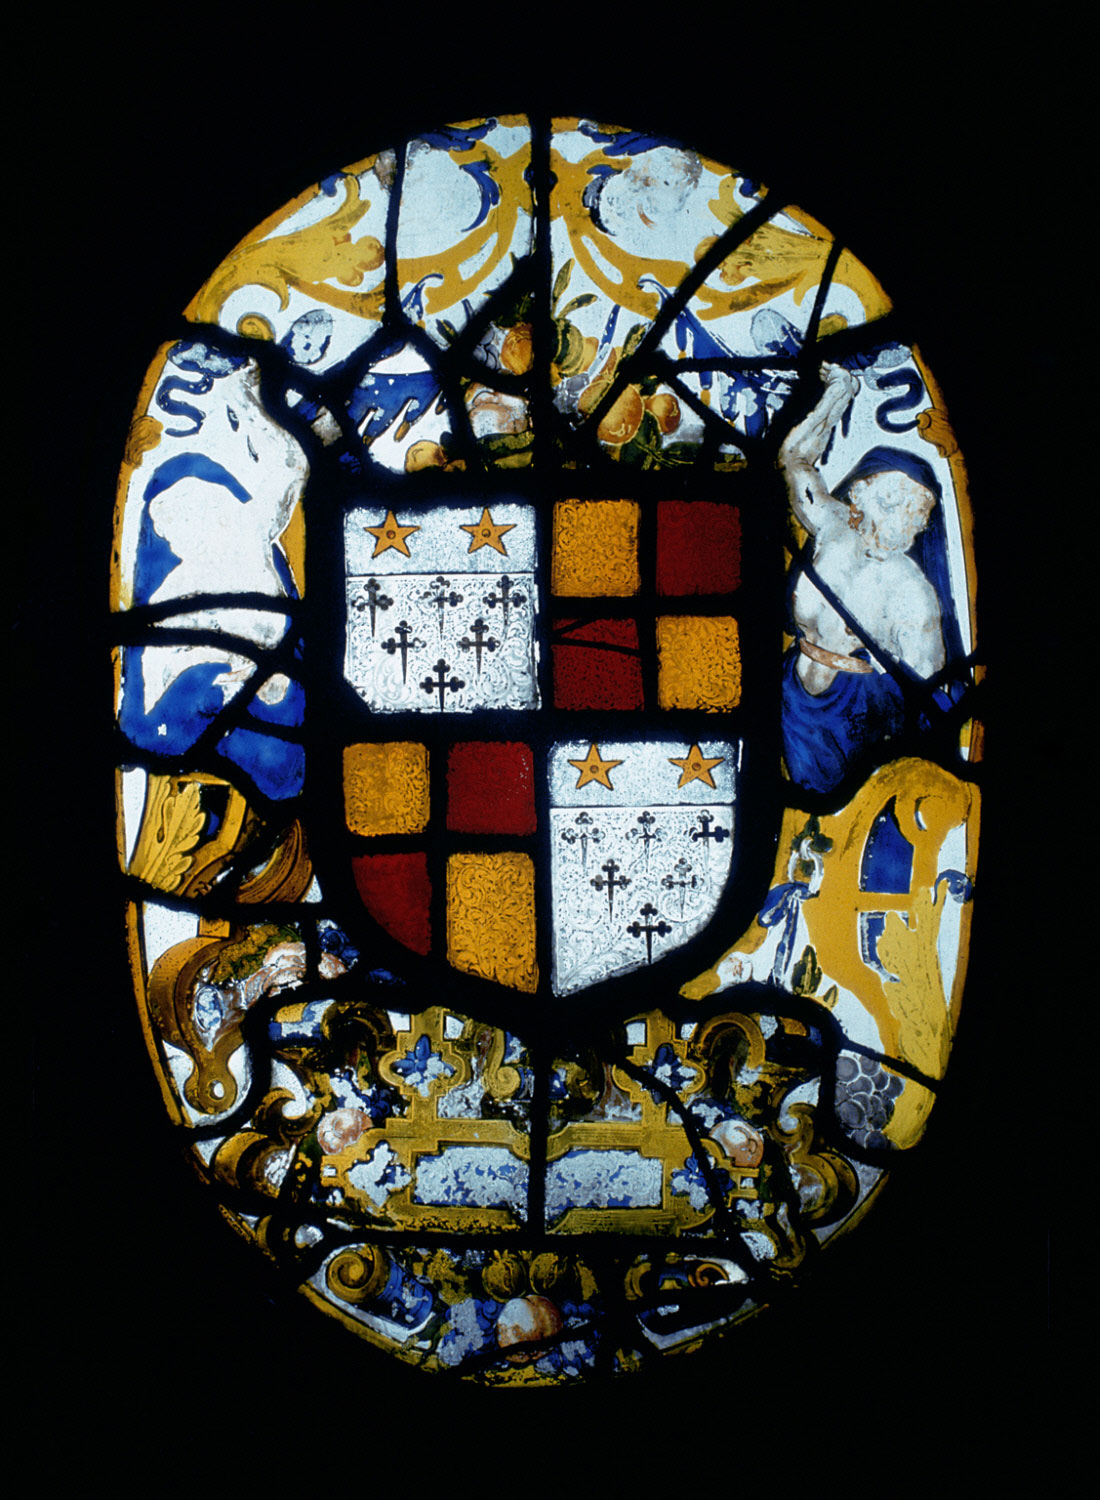 Coat of Arms of Edward Clinton (died 1585) or Henry Clinton (died 1616), Lords Clinton and Earls of Lincoln